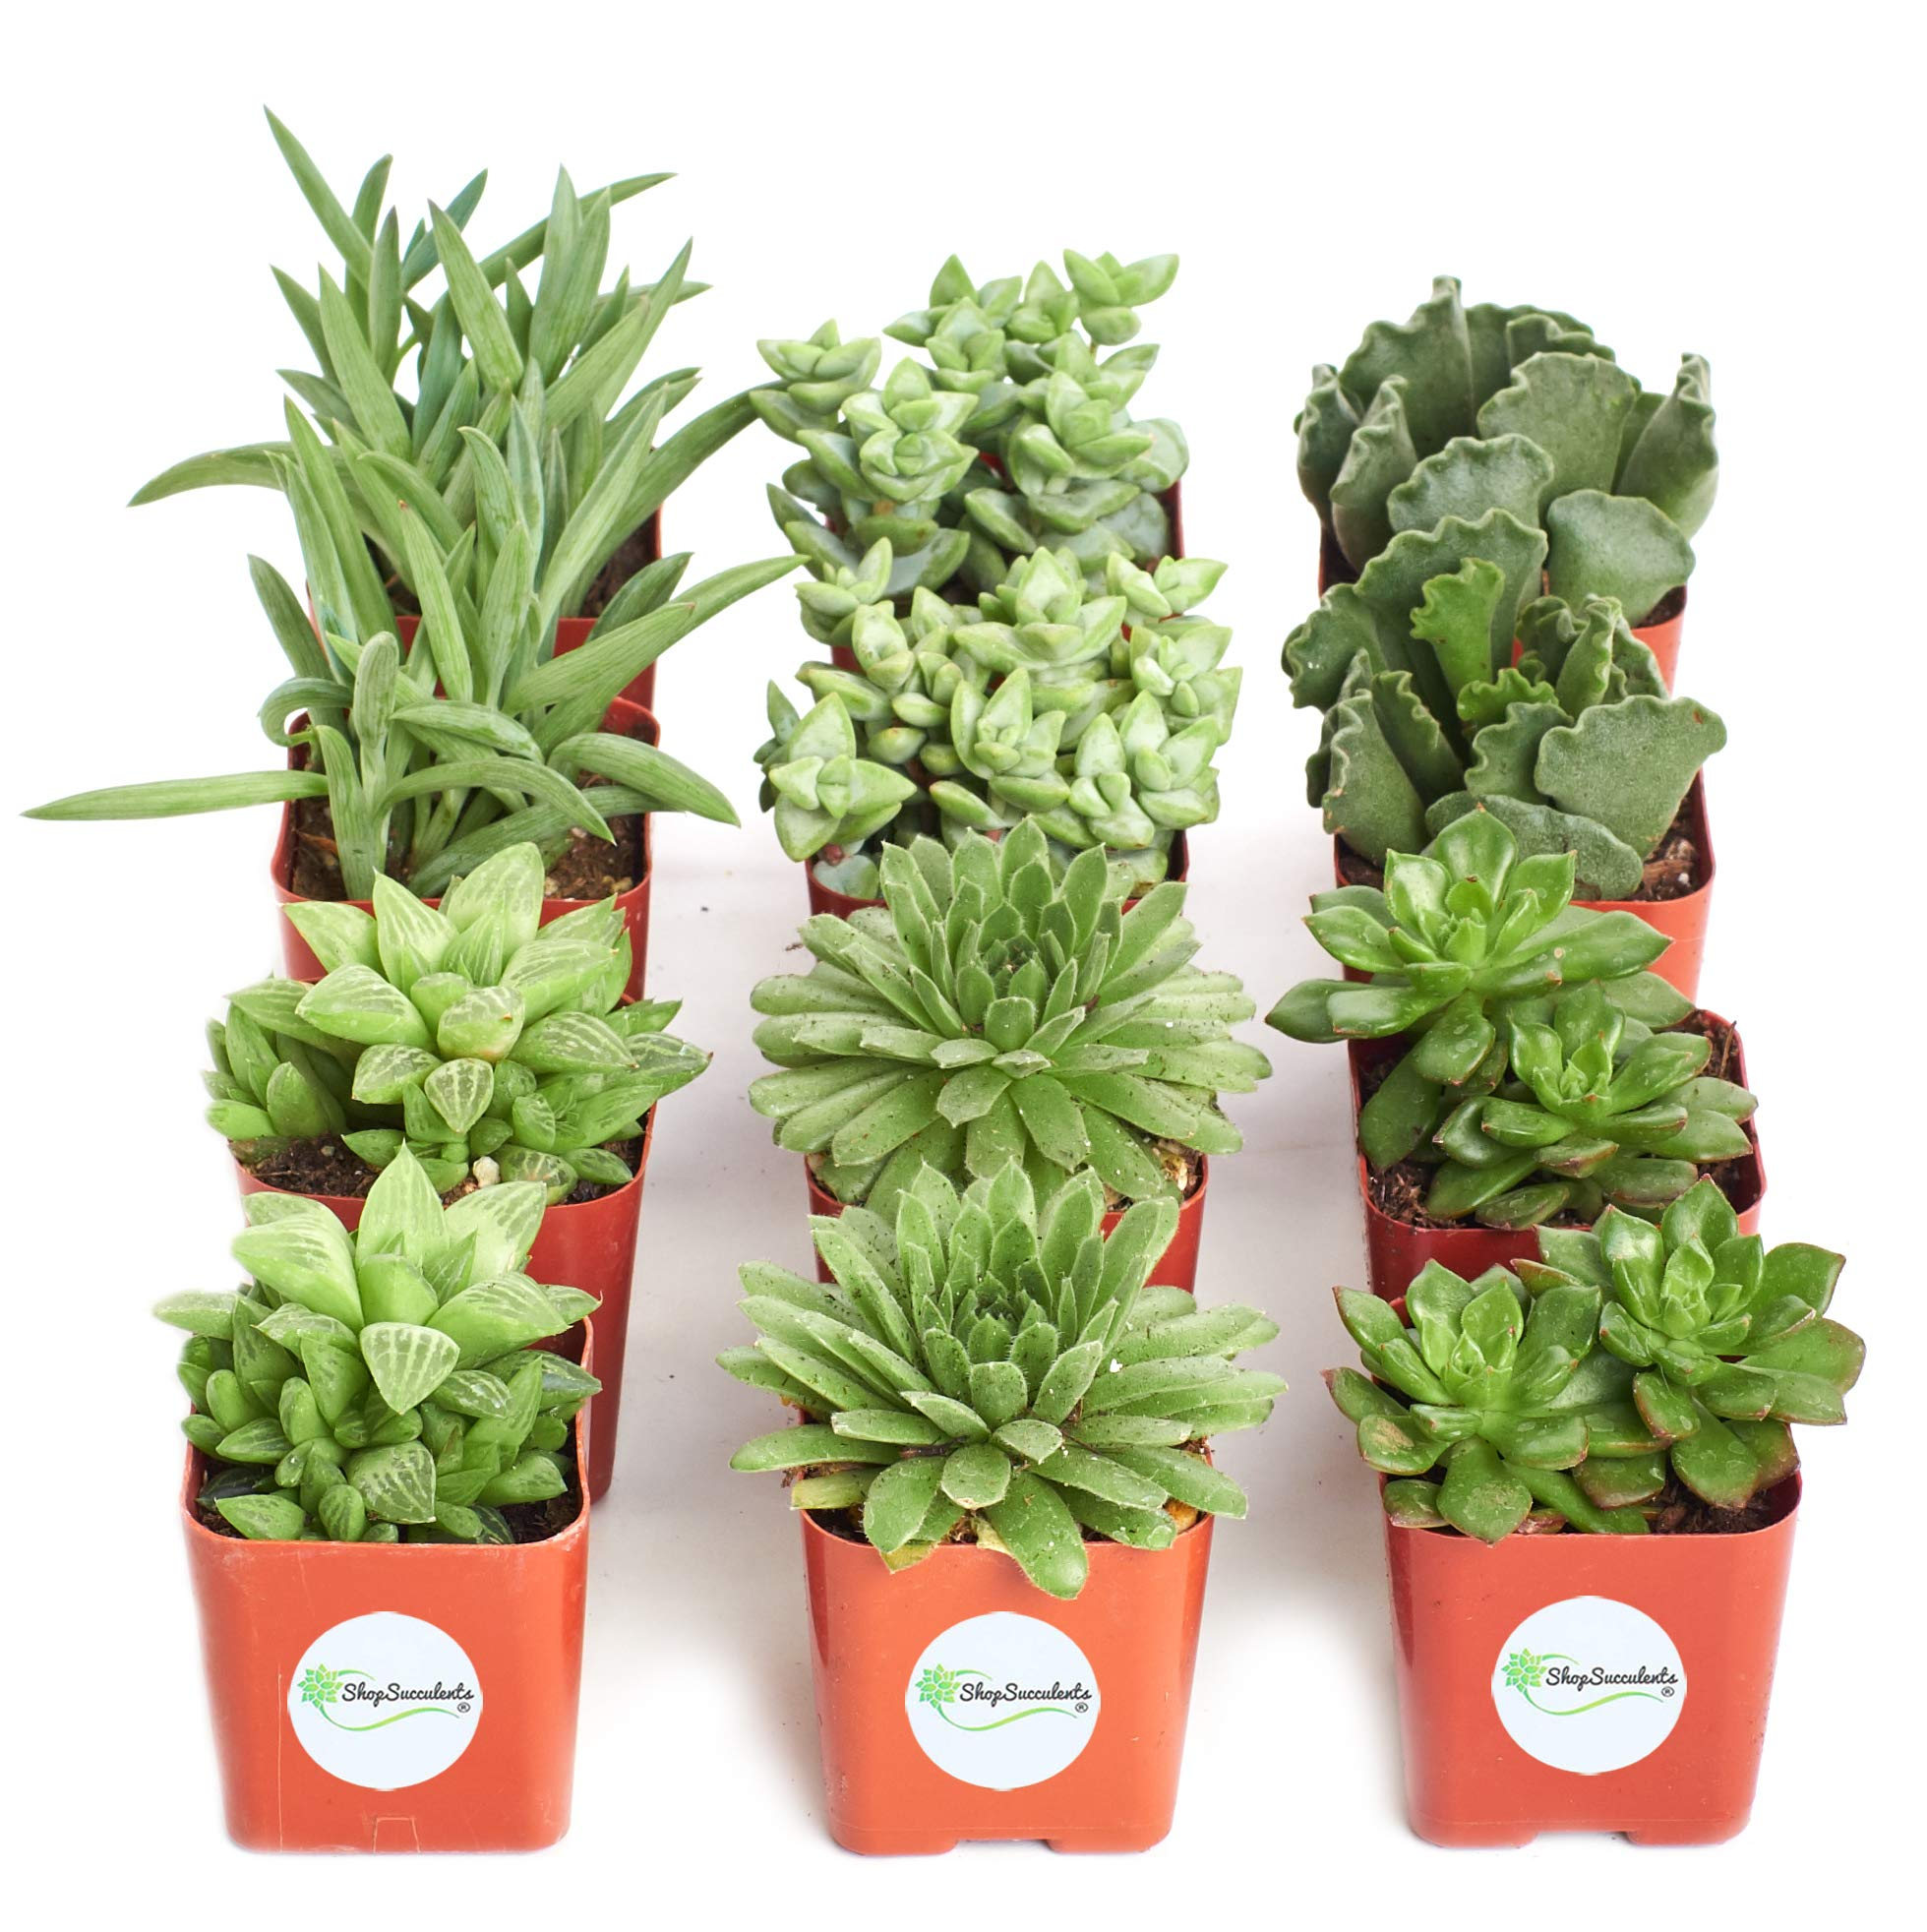 Shop Succulents | Green Live Plants, Hand Selected Variety Pack of Mini Succulents | | Collection of 12 in 2'' pots, Pack of 12 by Shop Succulents (Image #4)